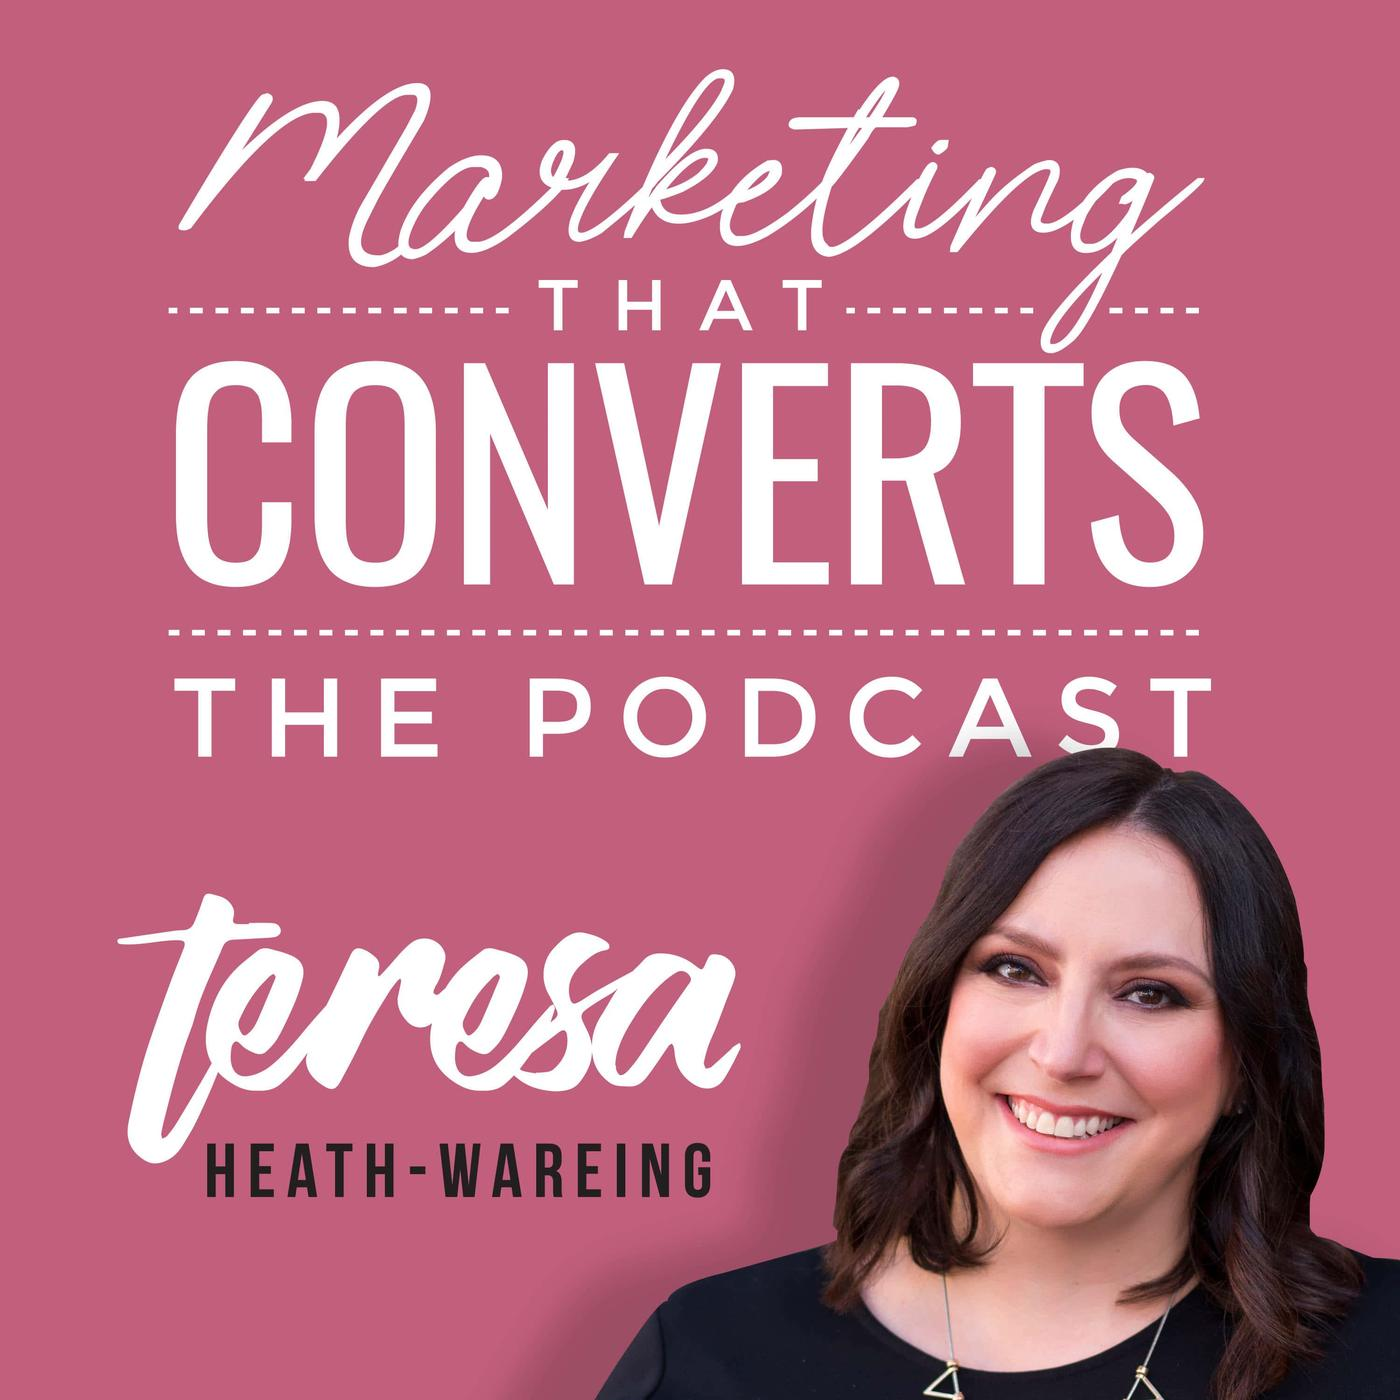 Podcasts – Teresa Heath Wareing - Teresa Heath-Wareing: Learn social